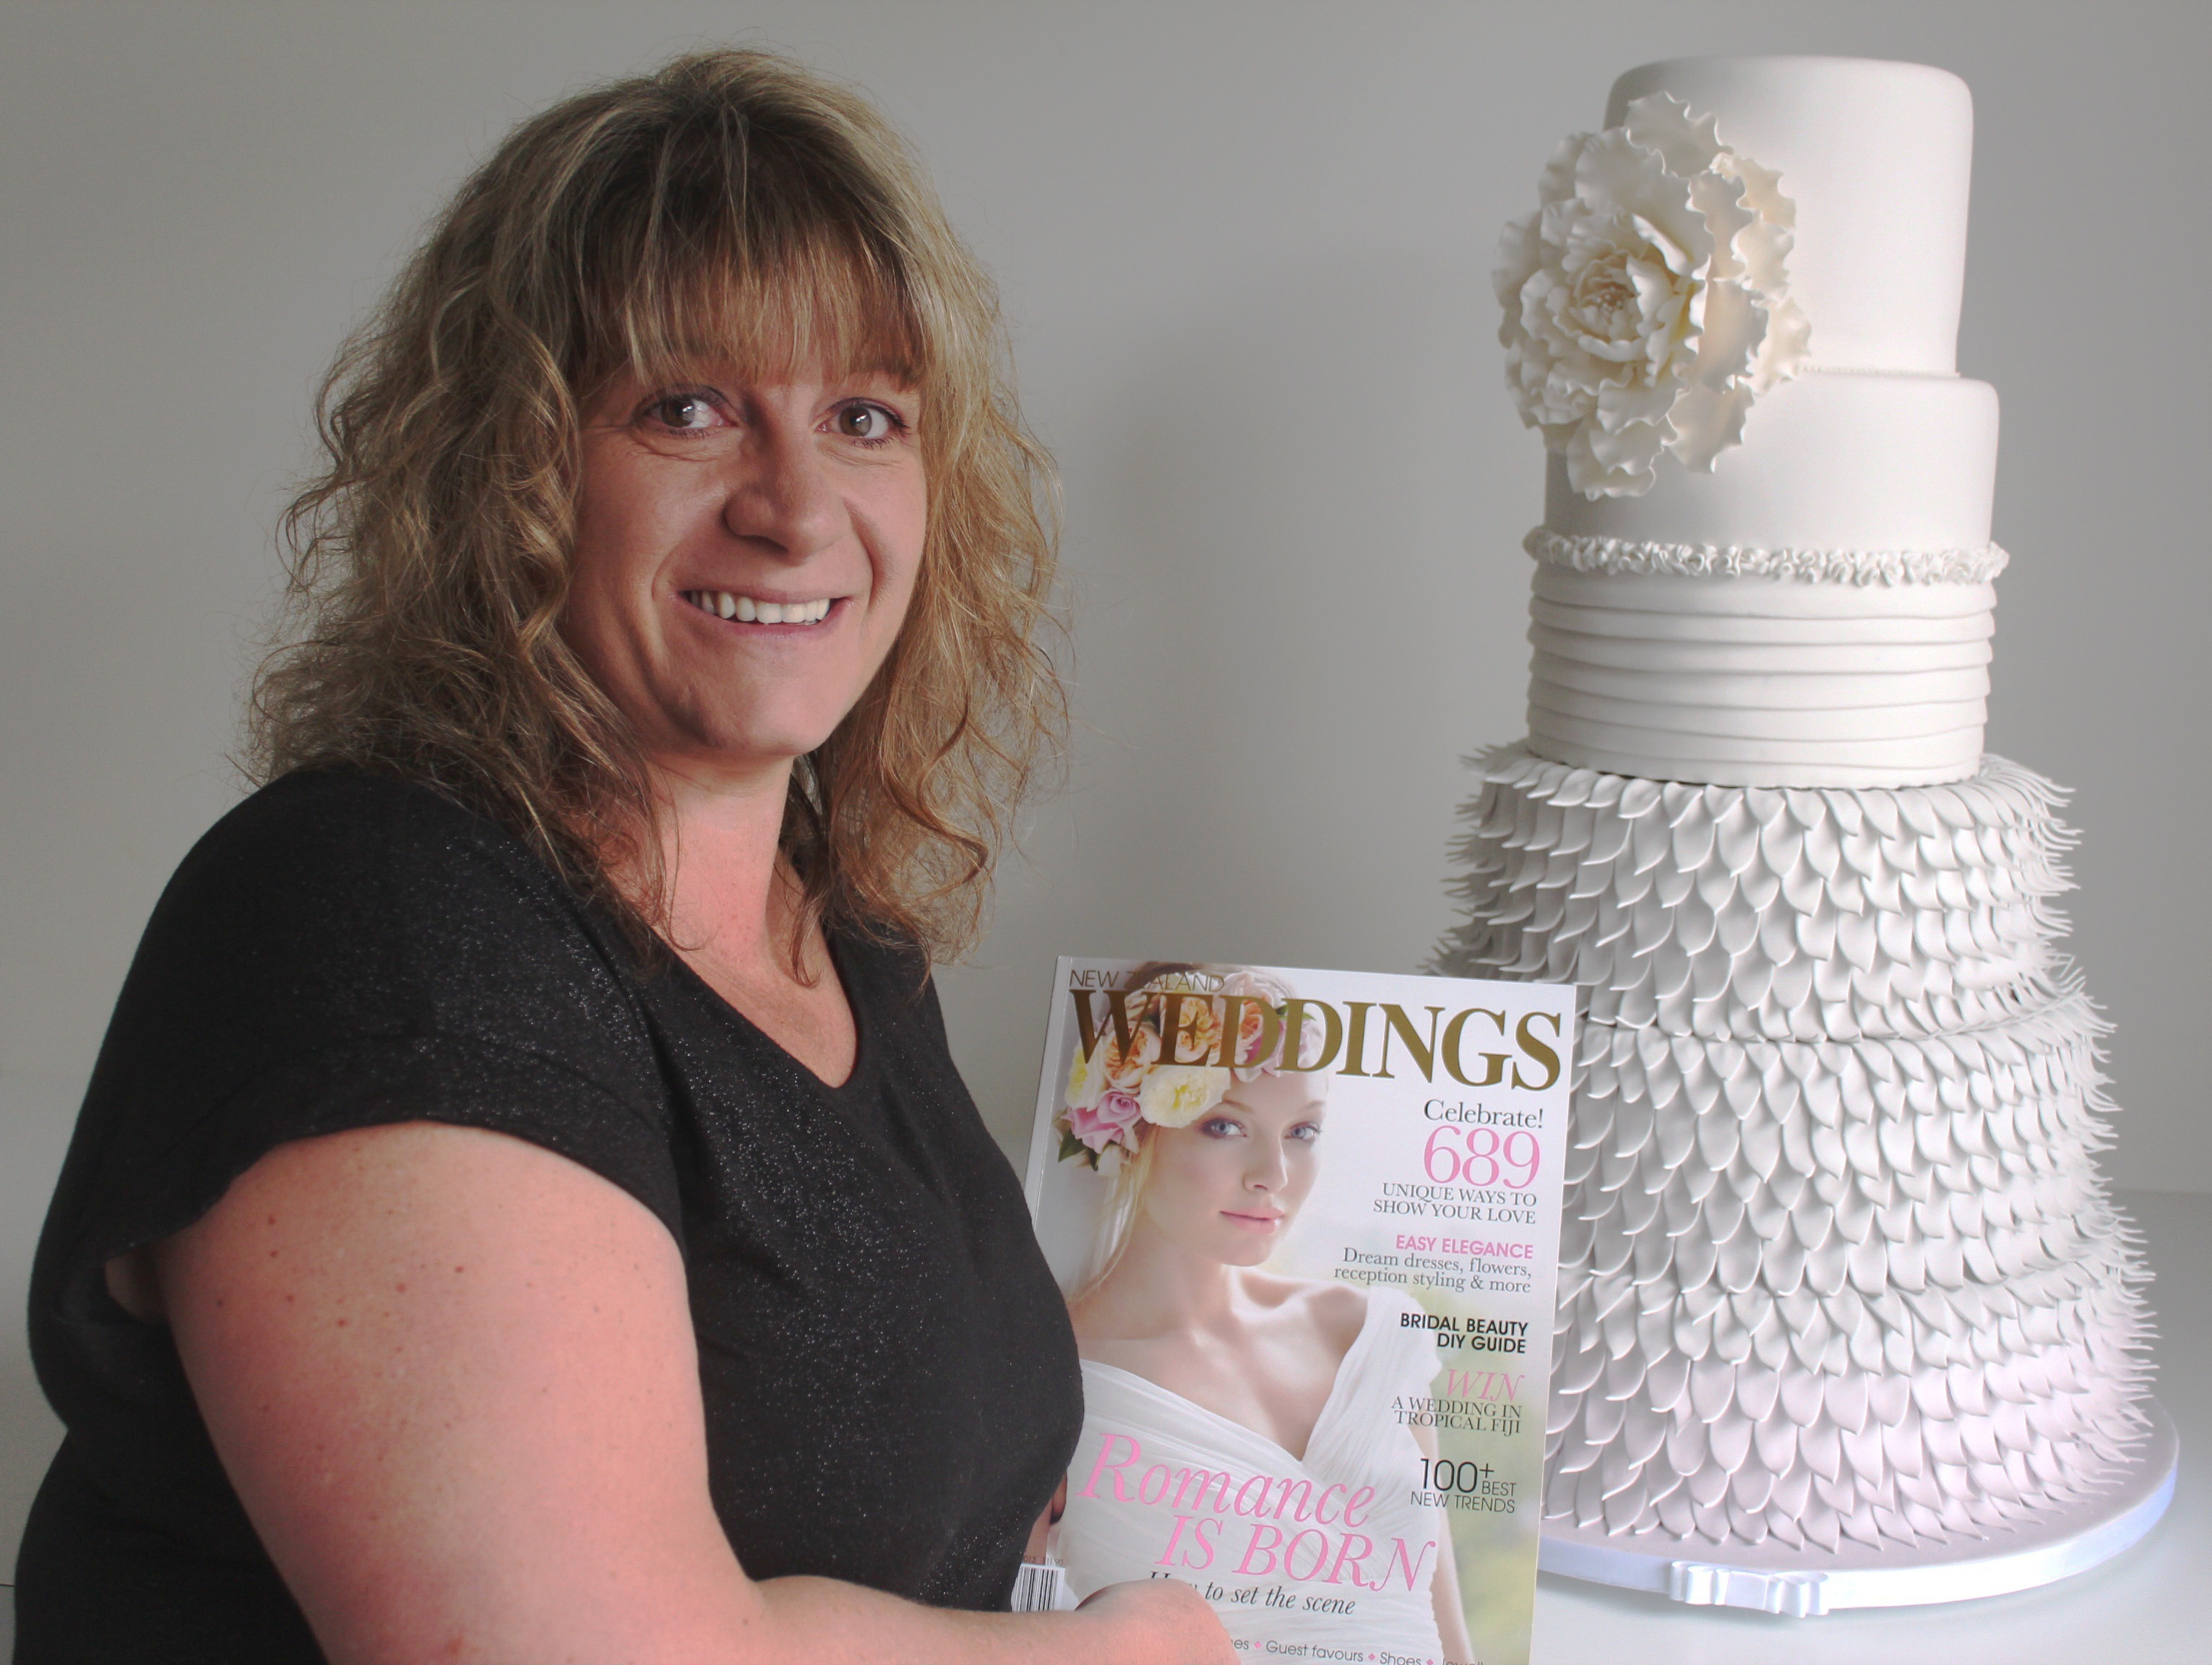 Wedding masterpiece: Alison Lythgow, owner of Cake Alicious in Bell Block, returned from Fashion Week after being named as runner-up for the North Island in the cake decorating section. Photo: Sharyn Smart